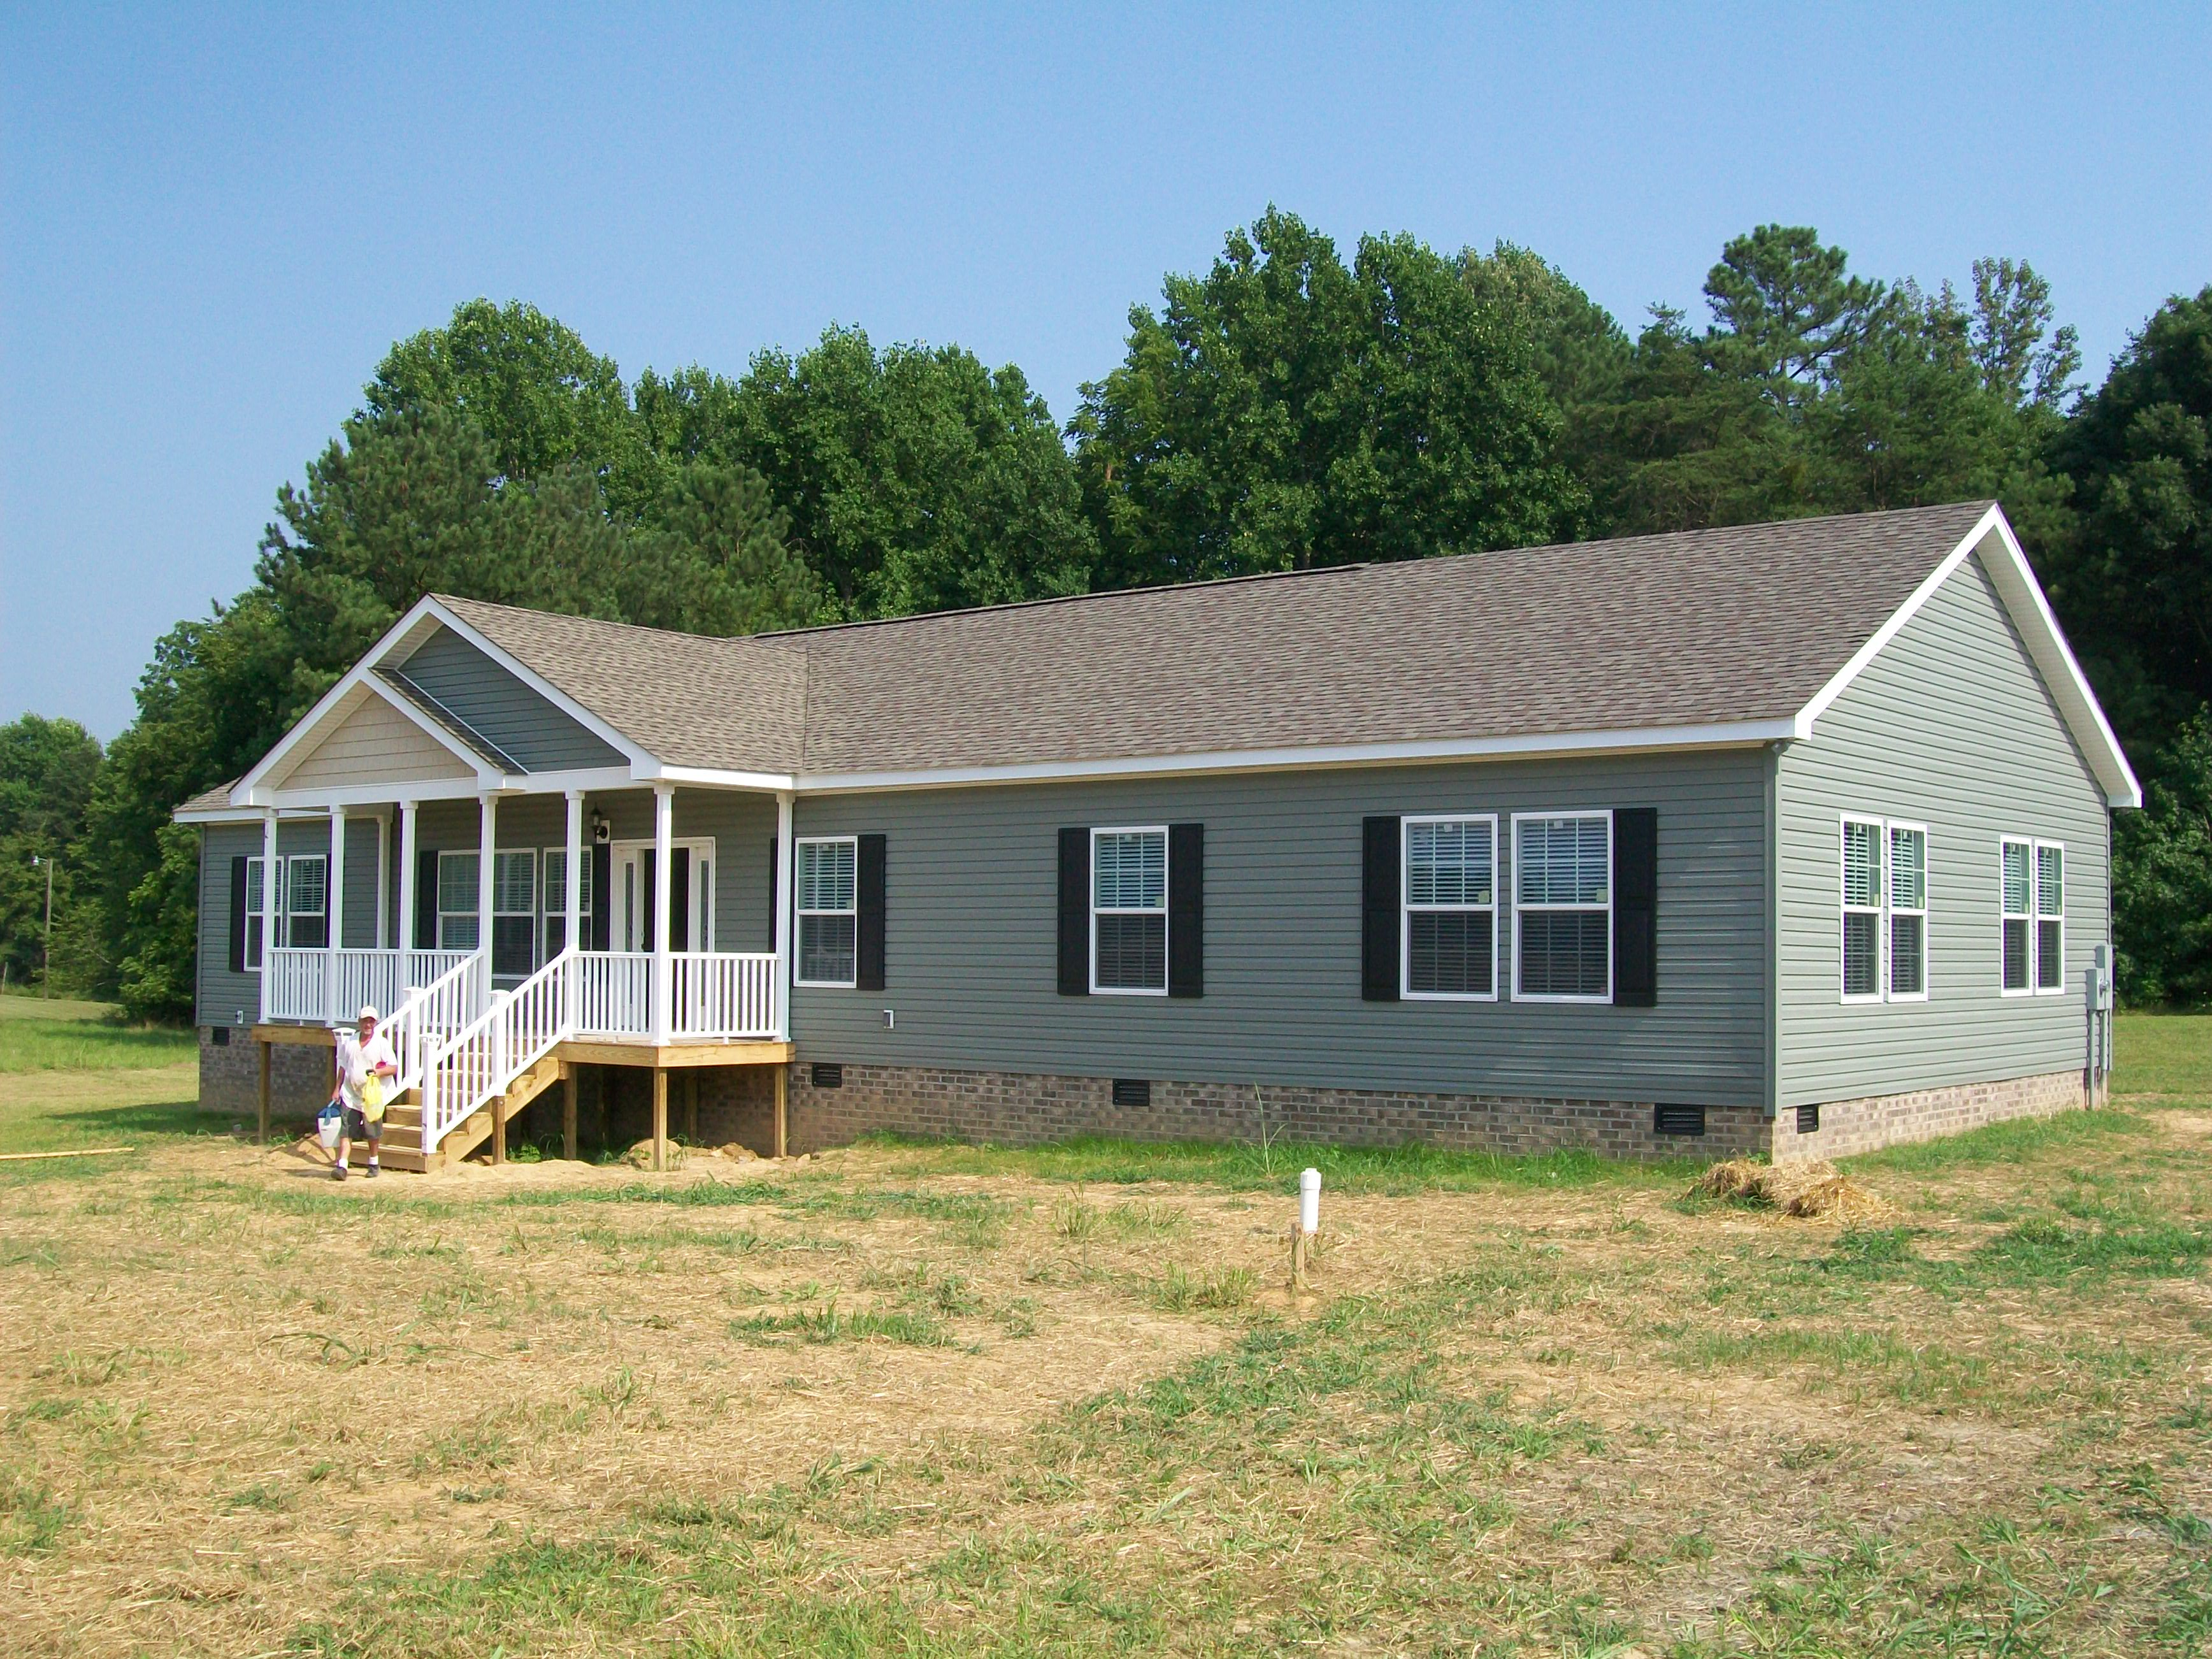 clayton homes in ashland va prefabricated modular buildings yellow pages directory inc. Black Bedroom Furniture Sets. Home Design Ideas